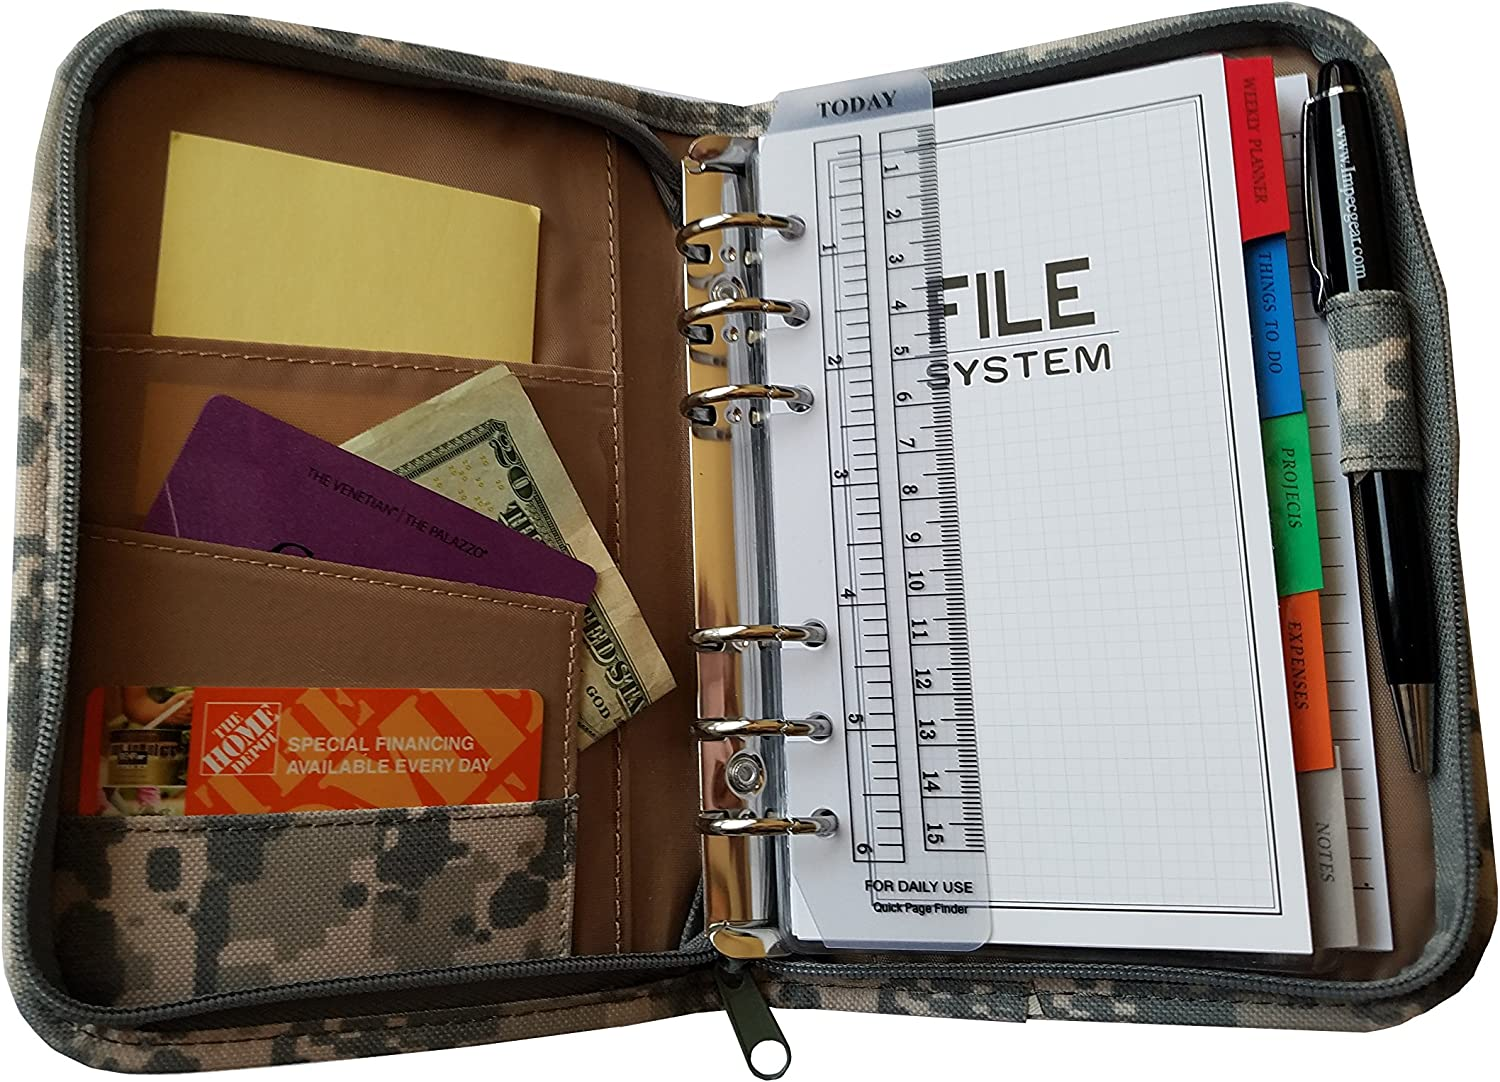 ImpecGear Camo Planner, Productivity/Financial Tracker, Organizer, Daily Calendar, Expense, Projects, Journal to Increase Productivity (Pack of 1)